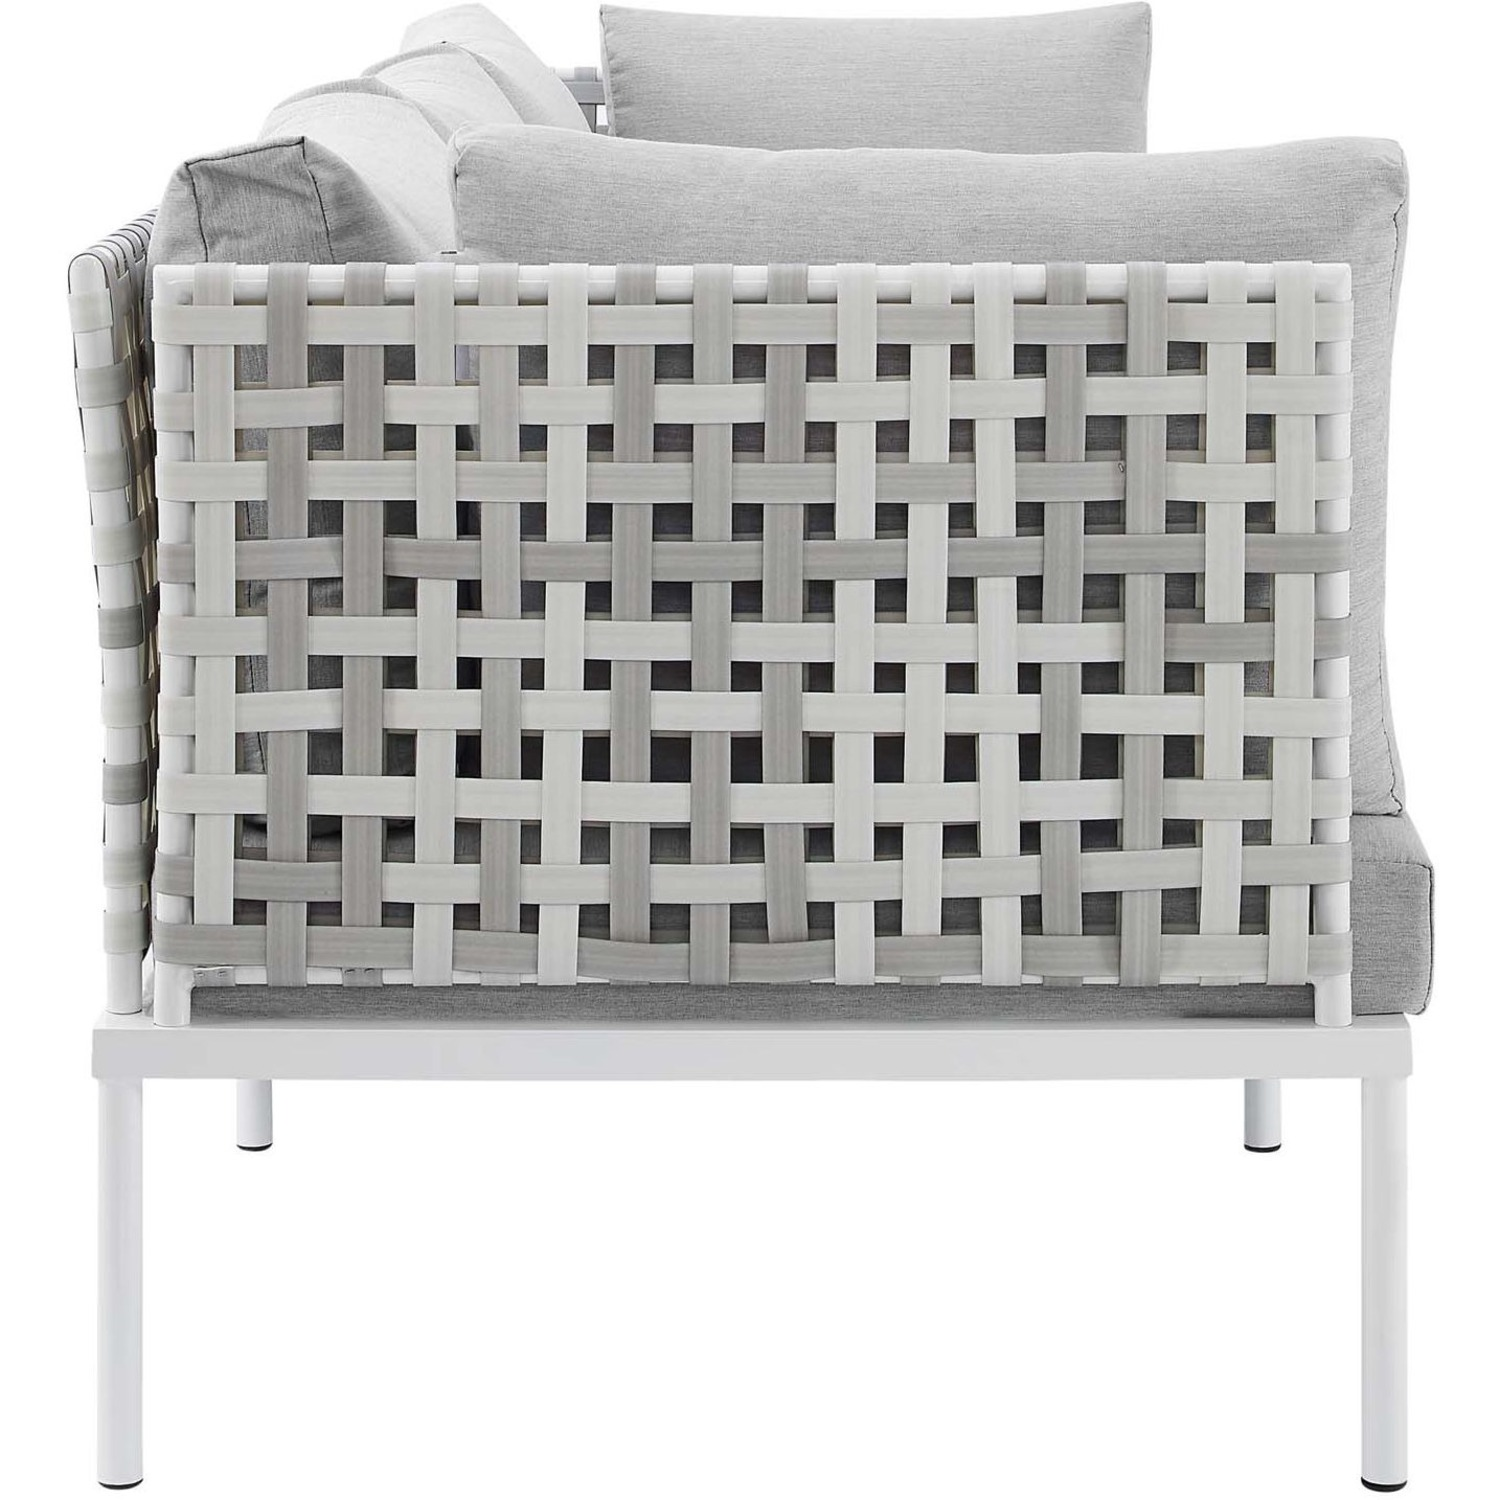 Outdoor Patio Sofa In Taupe Gray Cushion Fabric - image-2